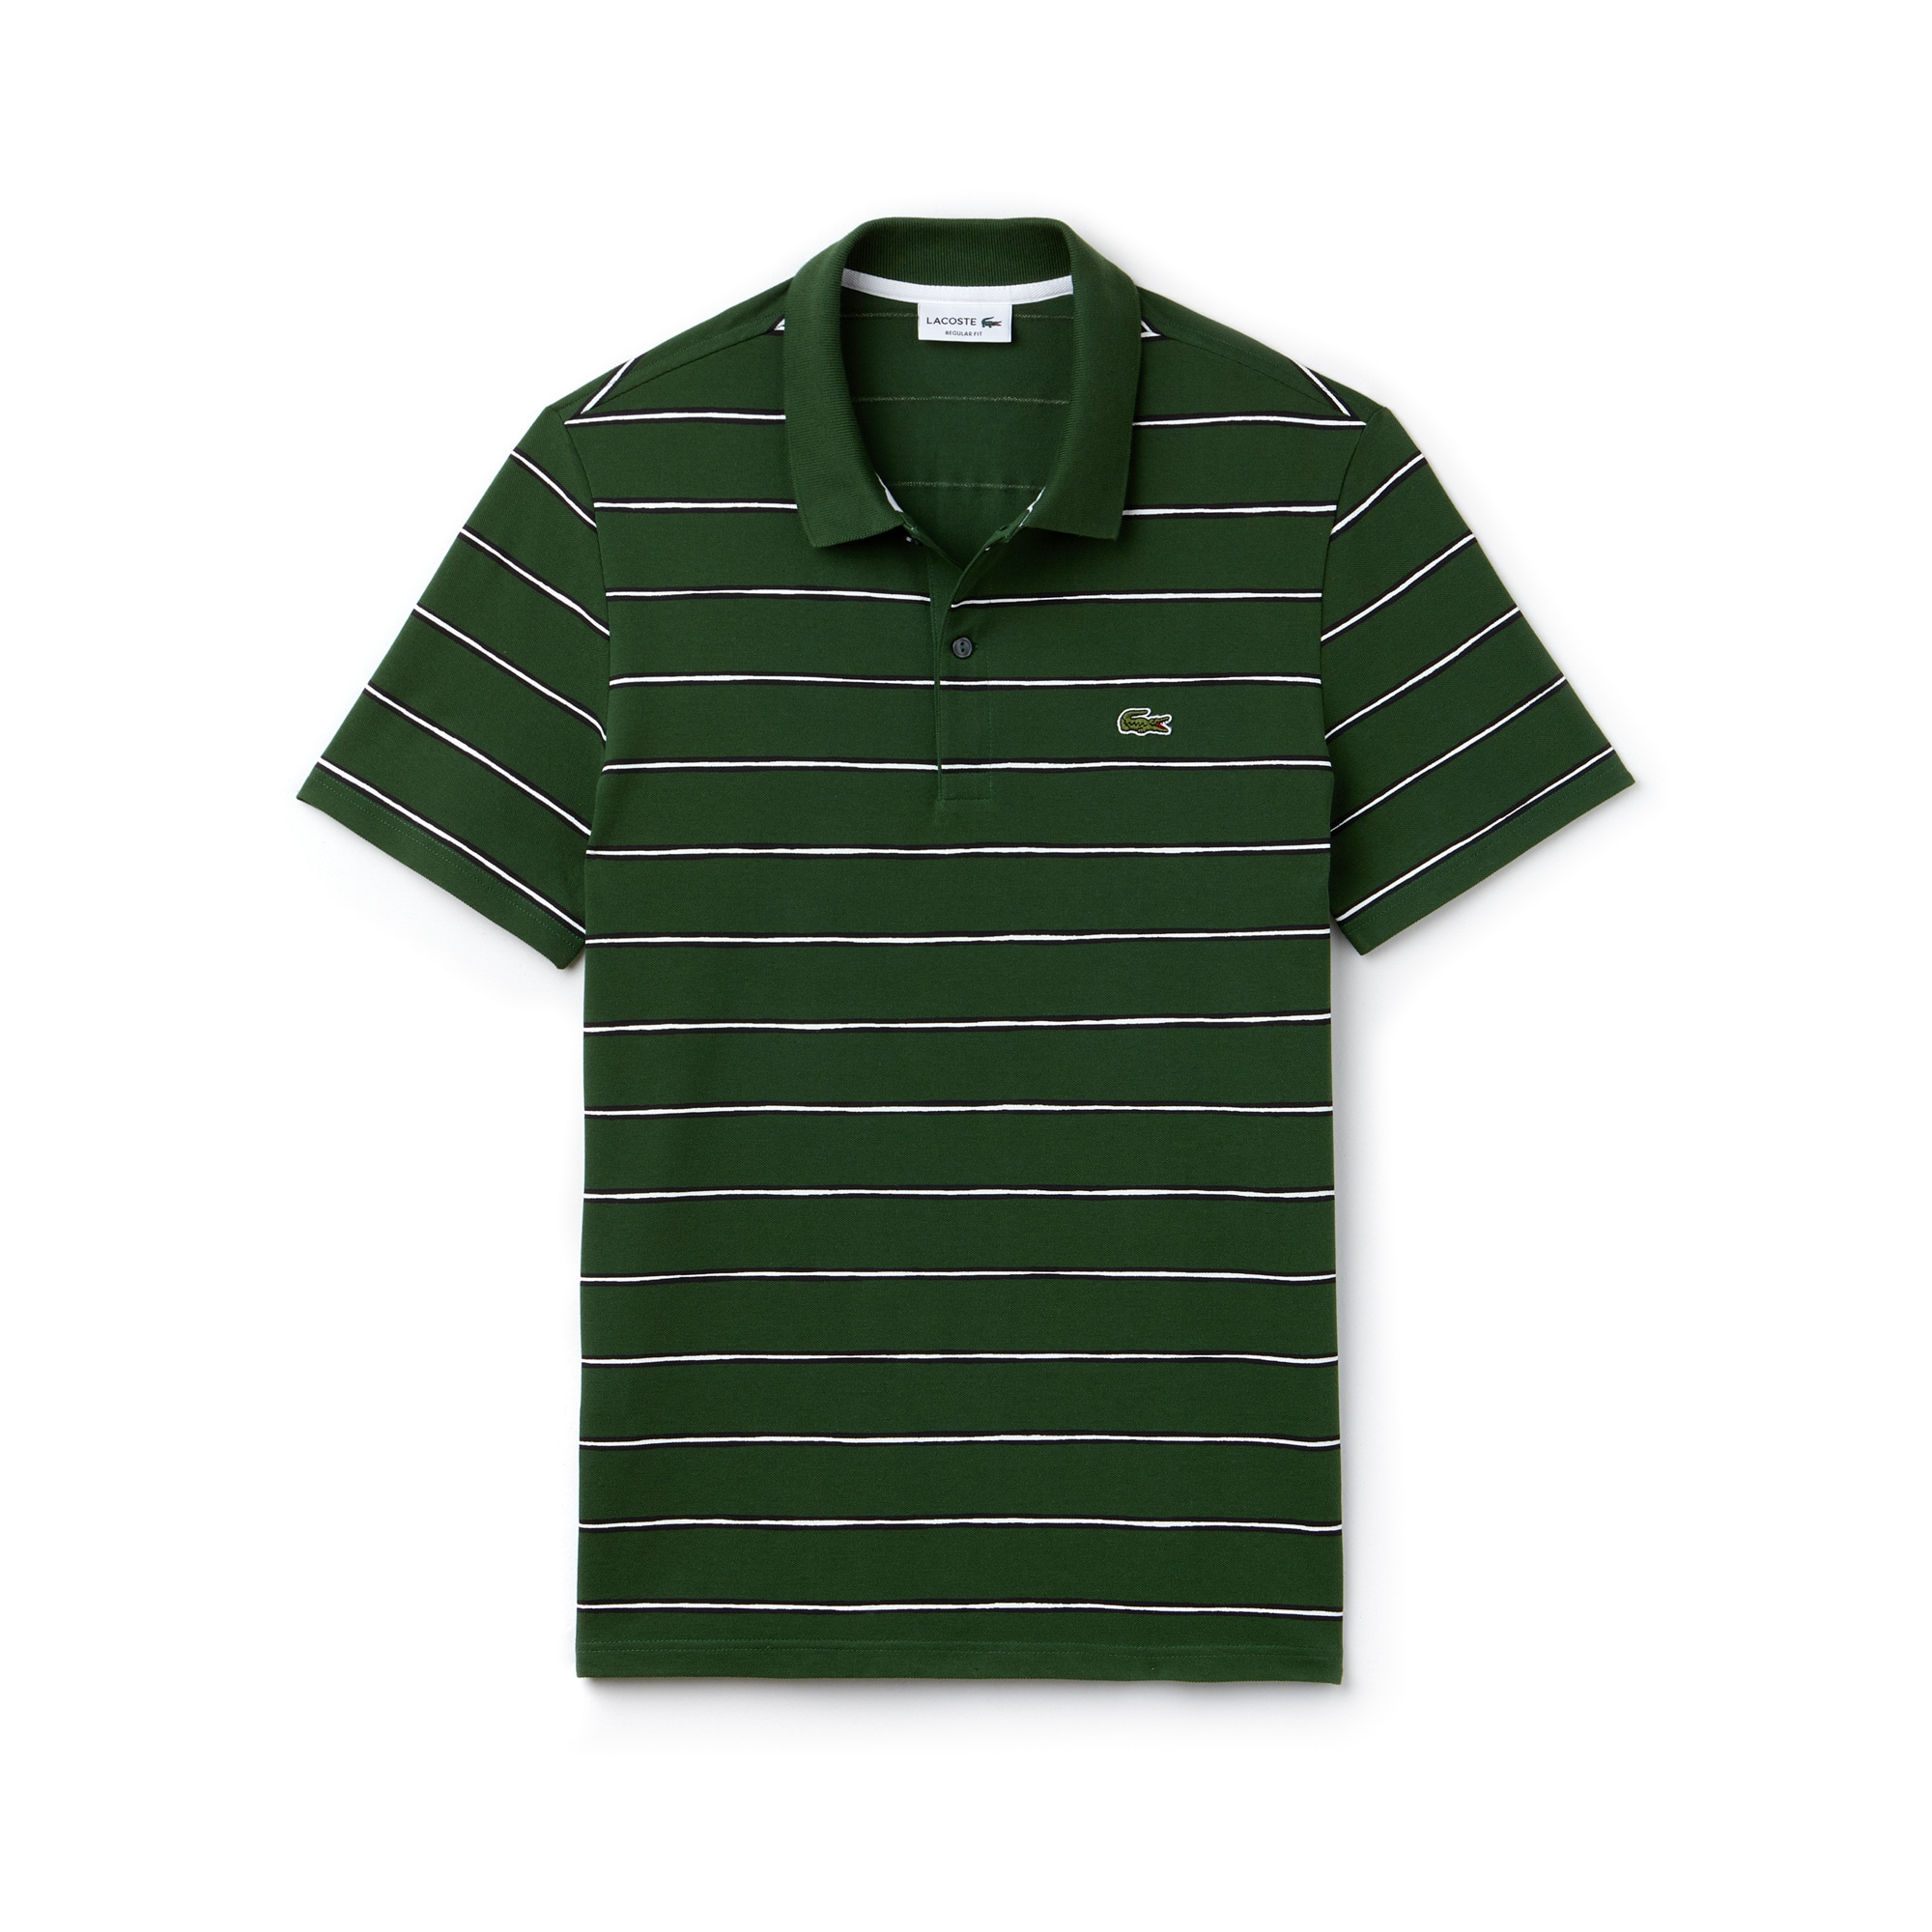 Men's Lacoste Regular Fit Striped Cotton Mini Piqué Polo Shirt